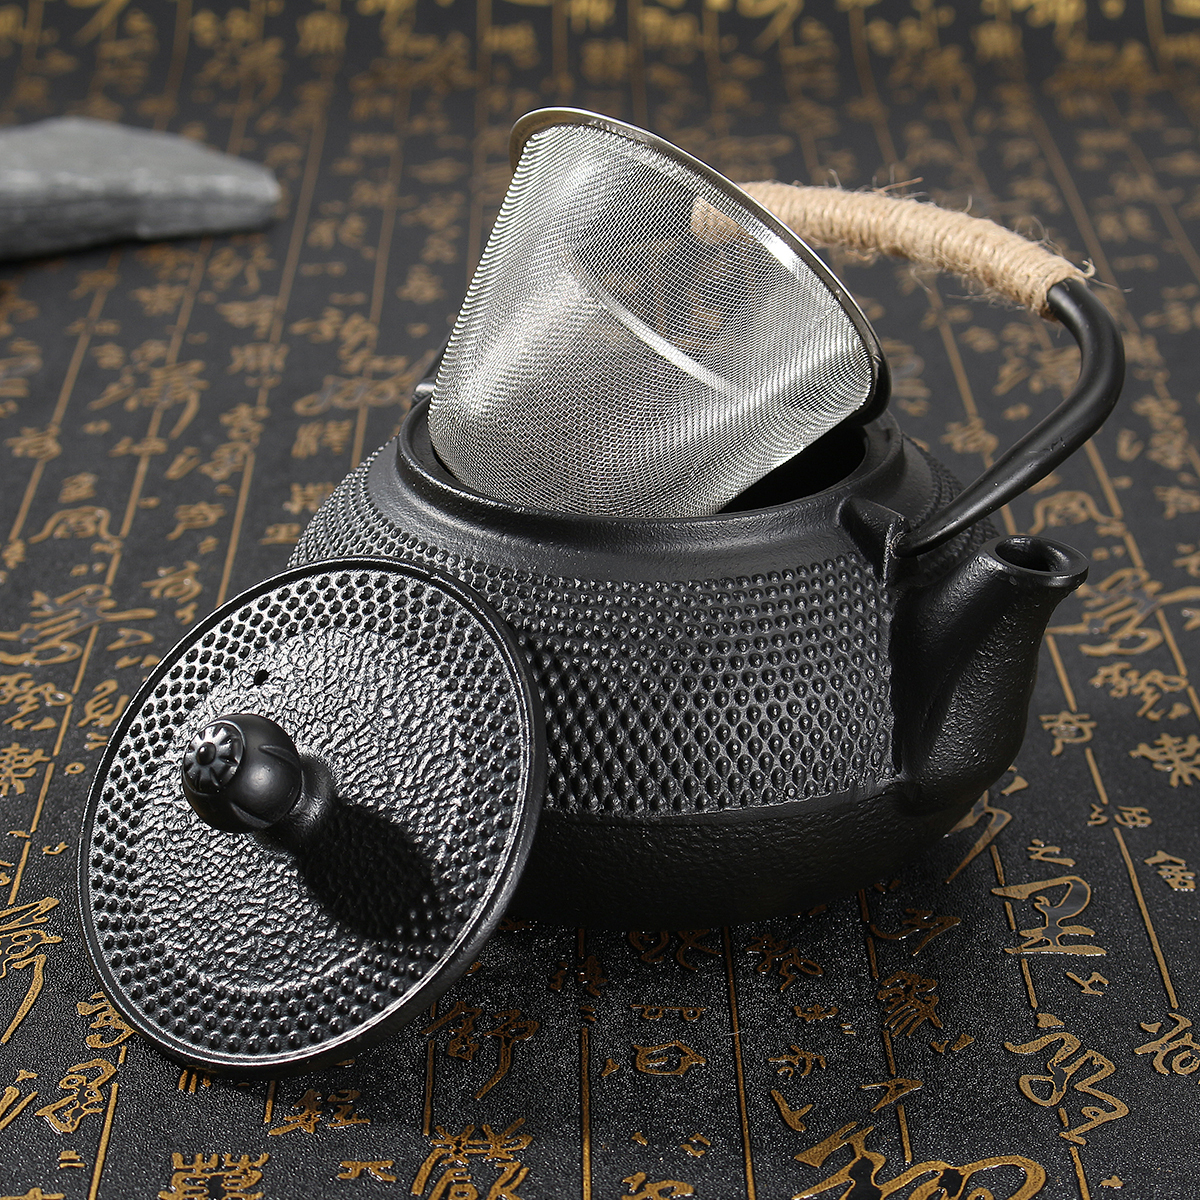 800ml cast iron japanese teapot with infuser strainer water kettle pots boiler ebay - Japanese teapot with infuser ...